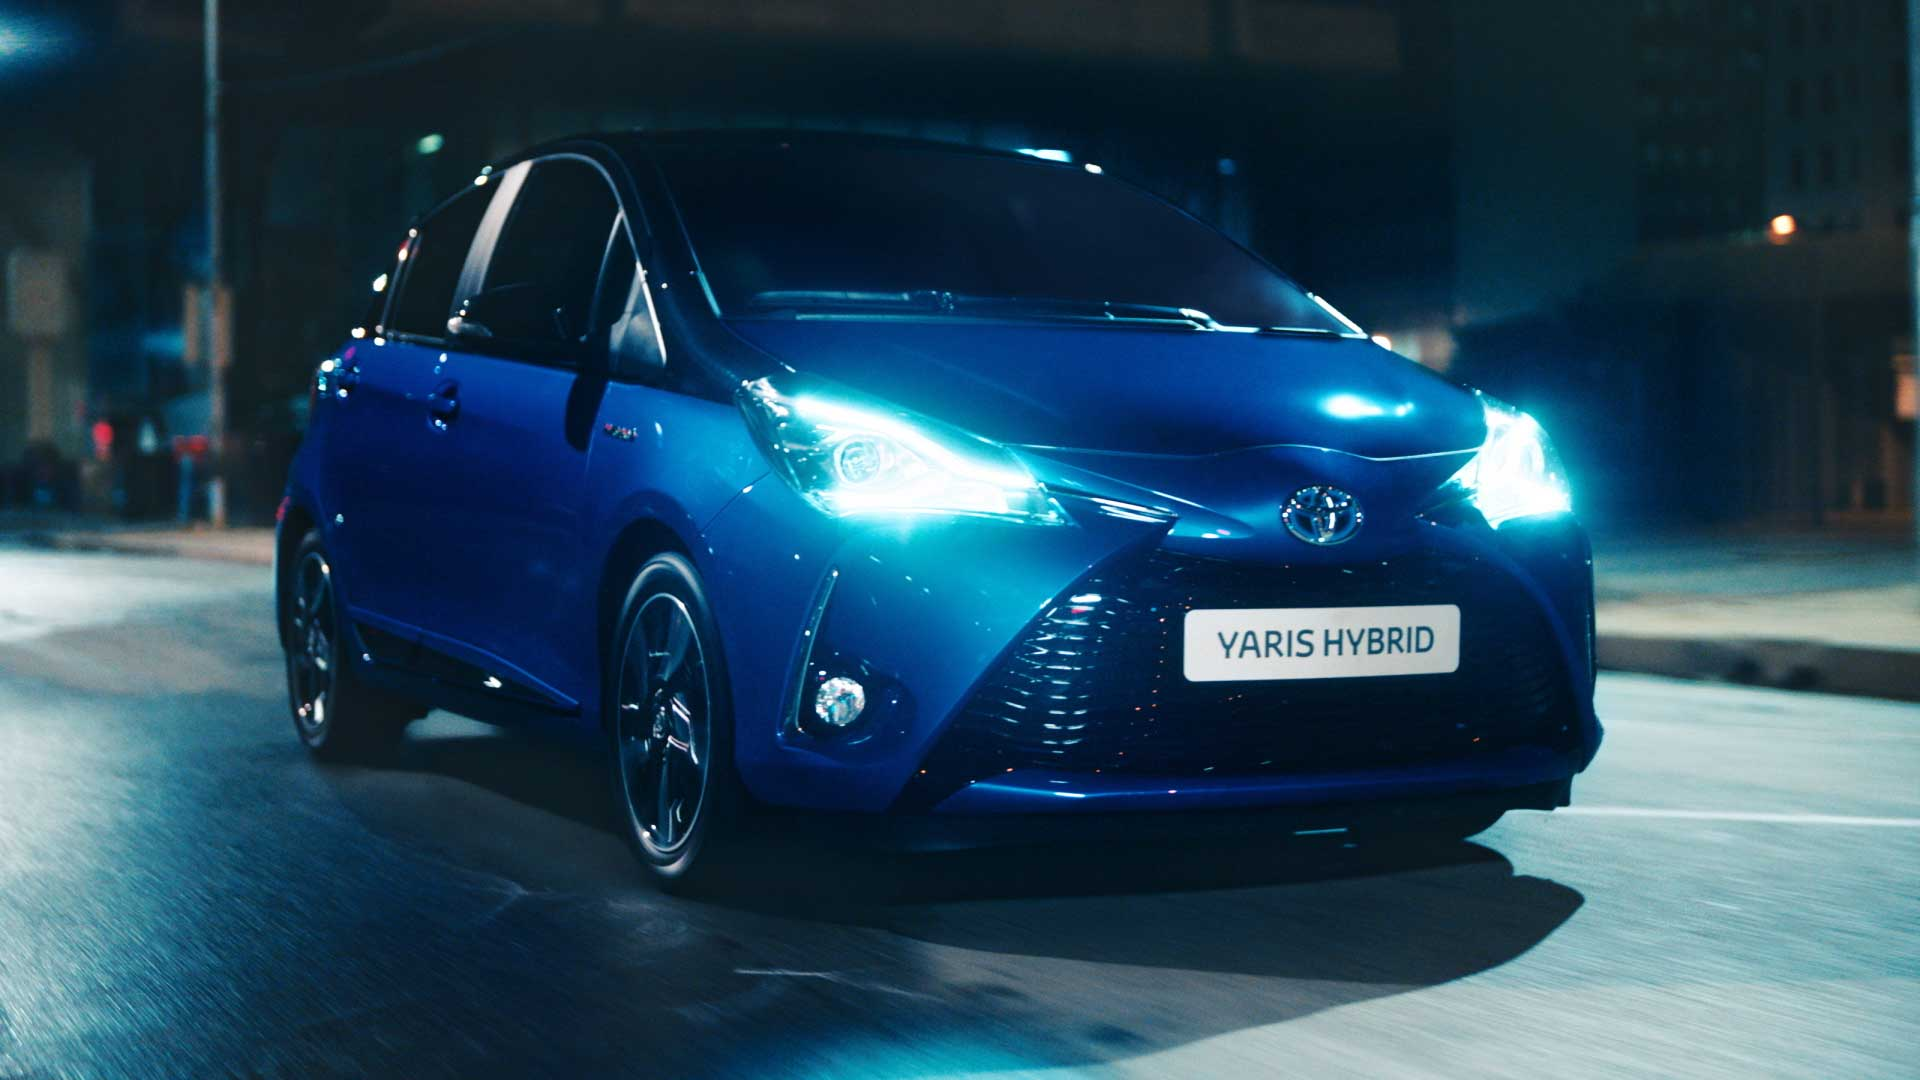 Car with lights. Still from Toyota Yaris commercial.